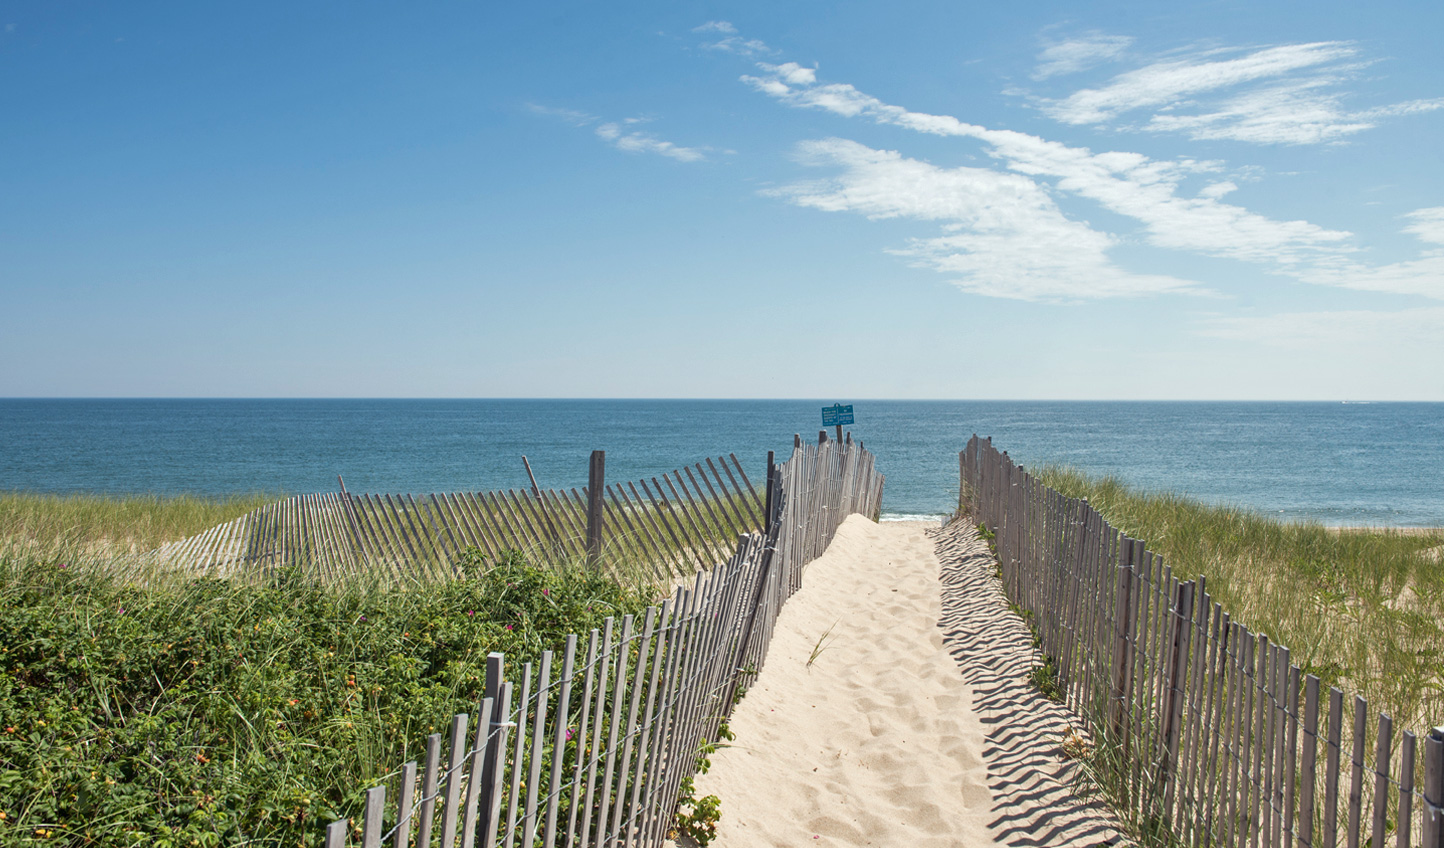 Nestled between the Atlantic and the warm waters of Nantucket Bay, the Wauwinet has the best of both world's when it comes to private beaches